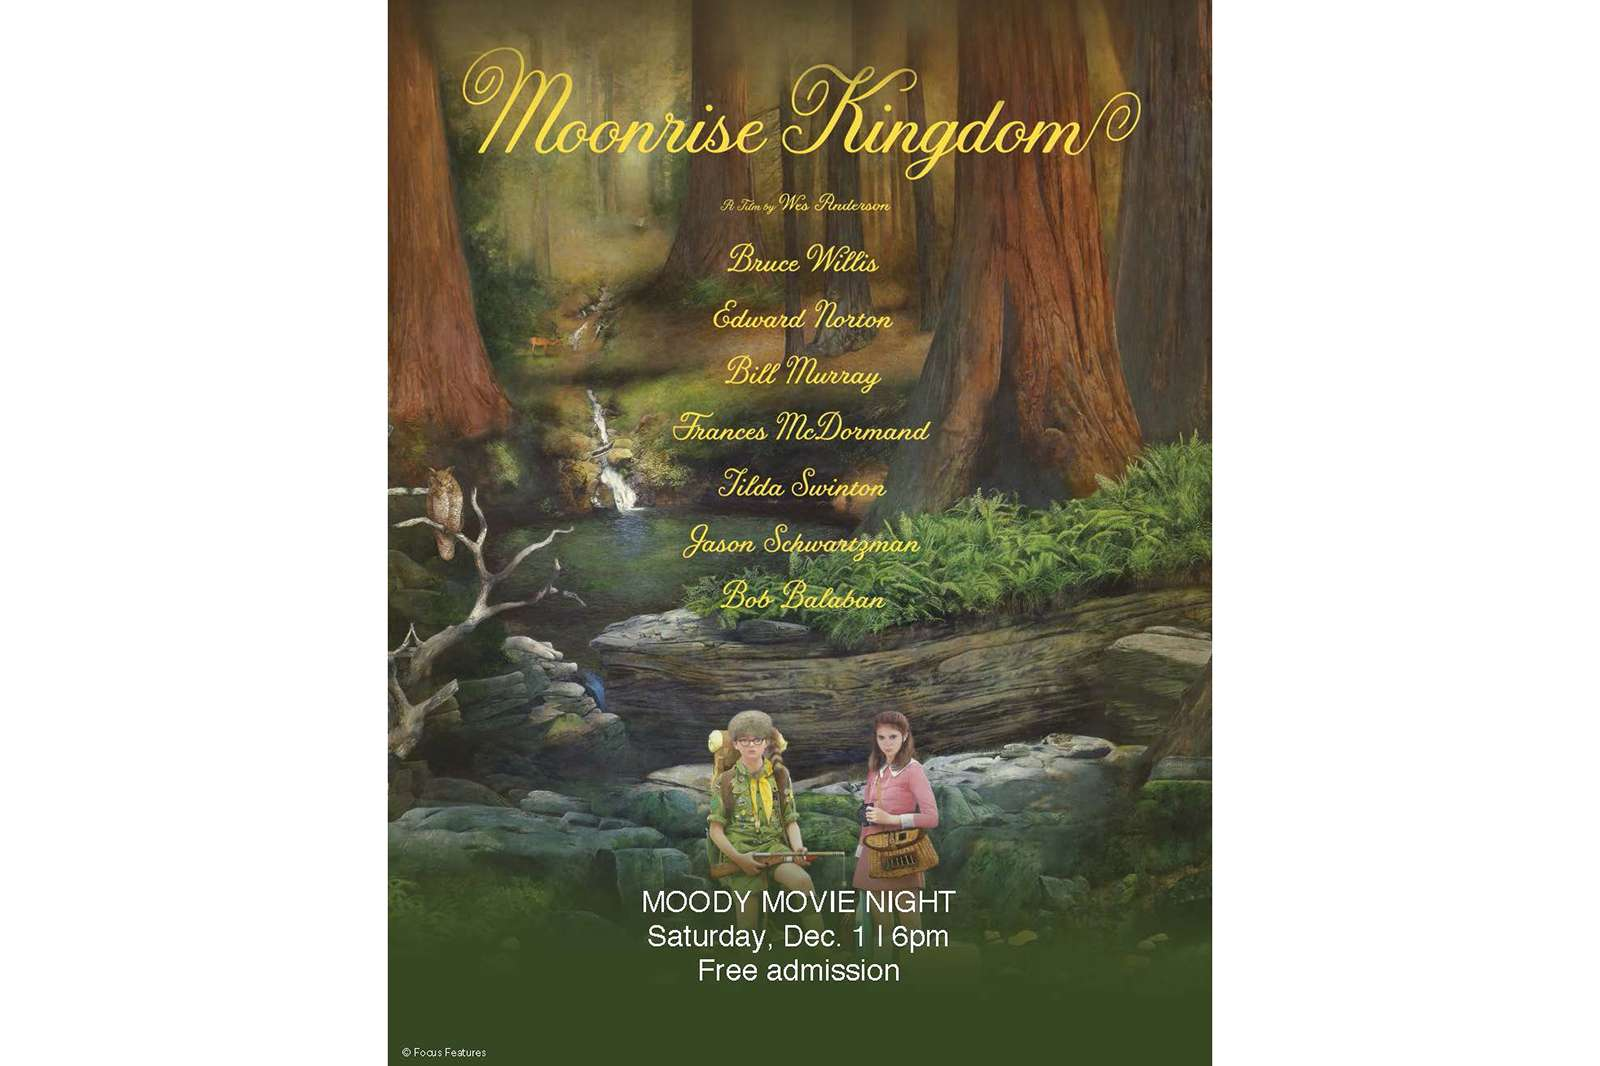 Moonrise Kingdom, 2012. Movie poster